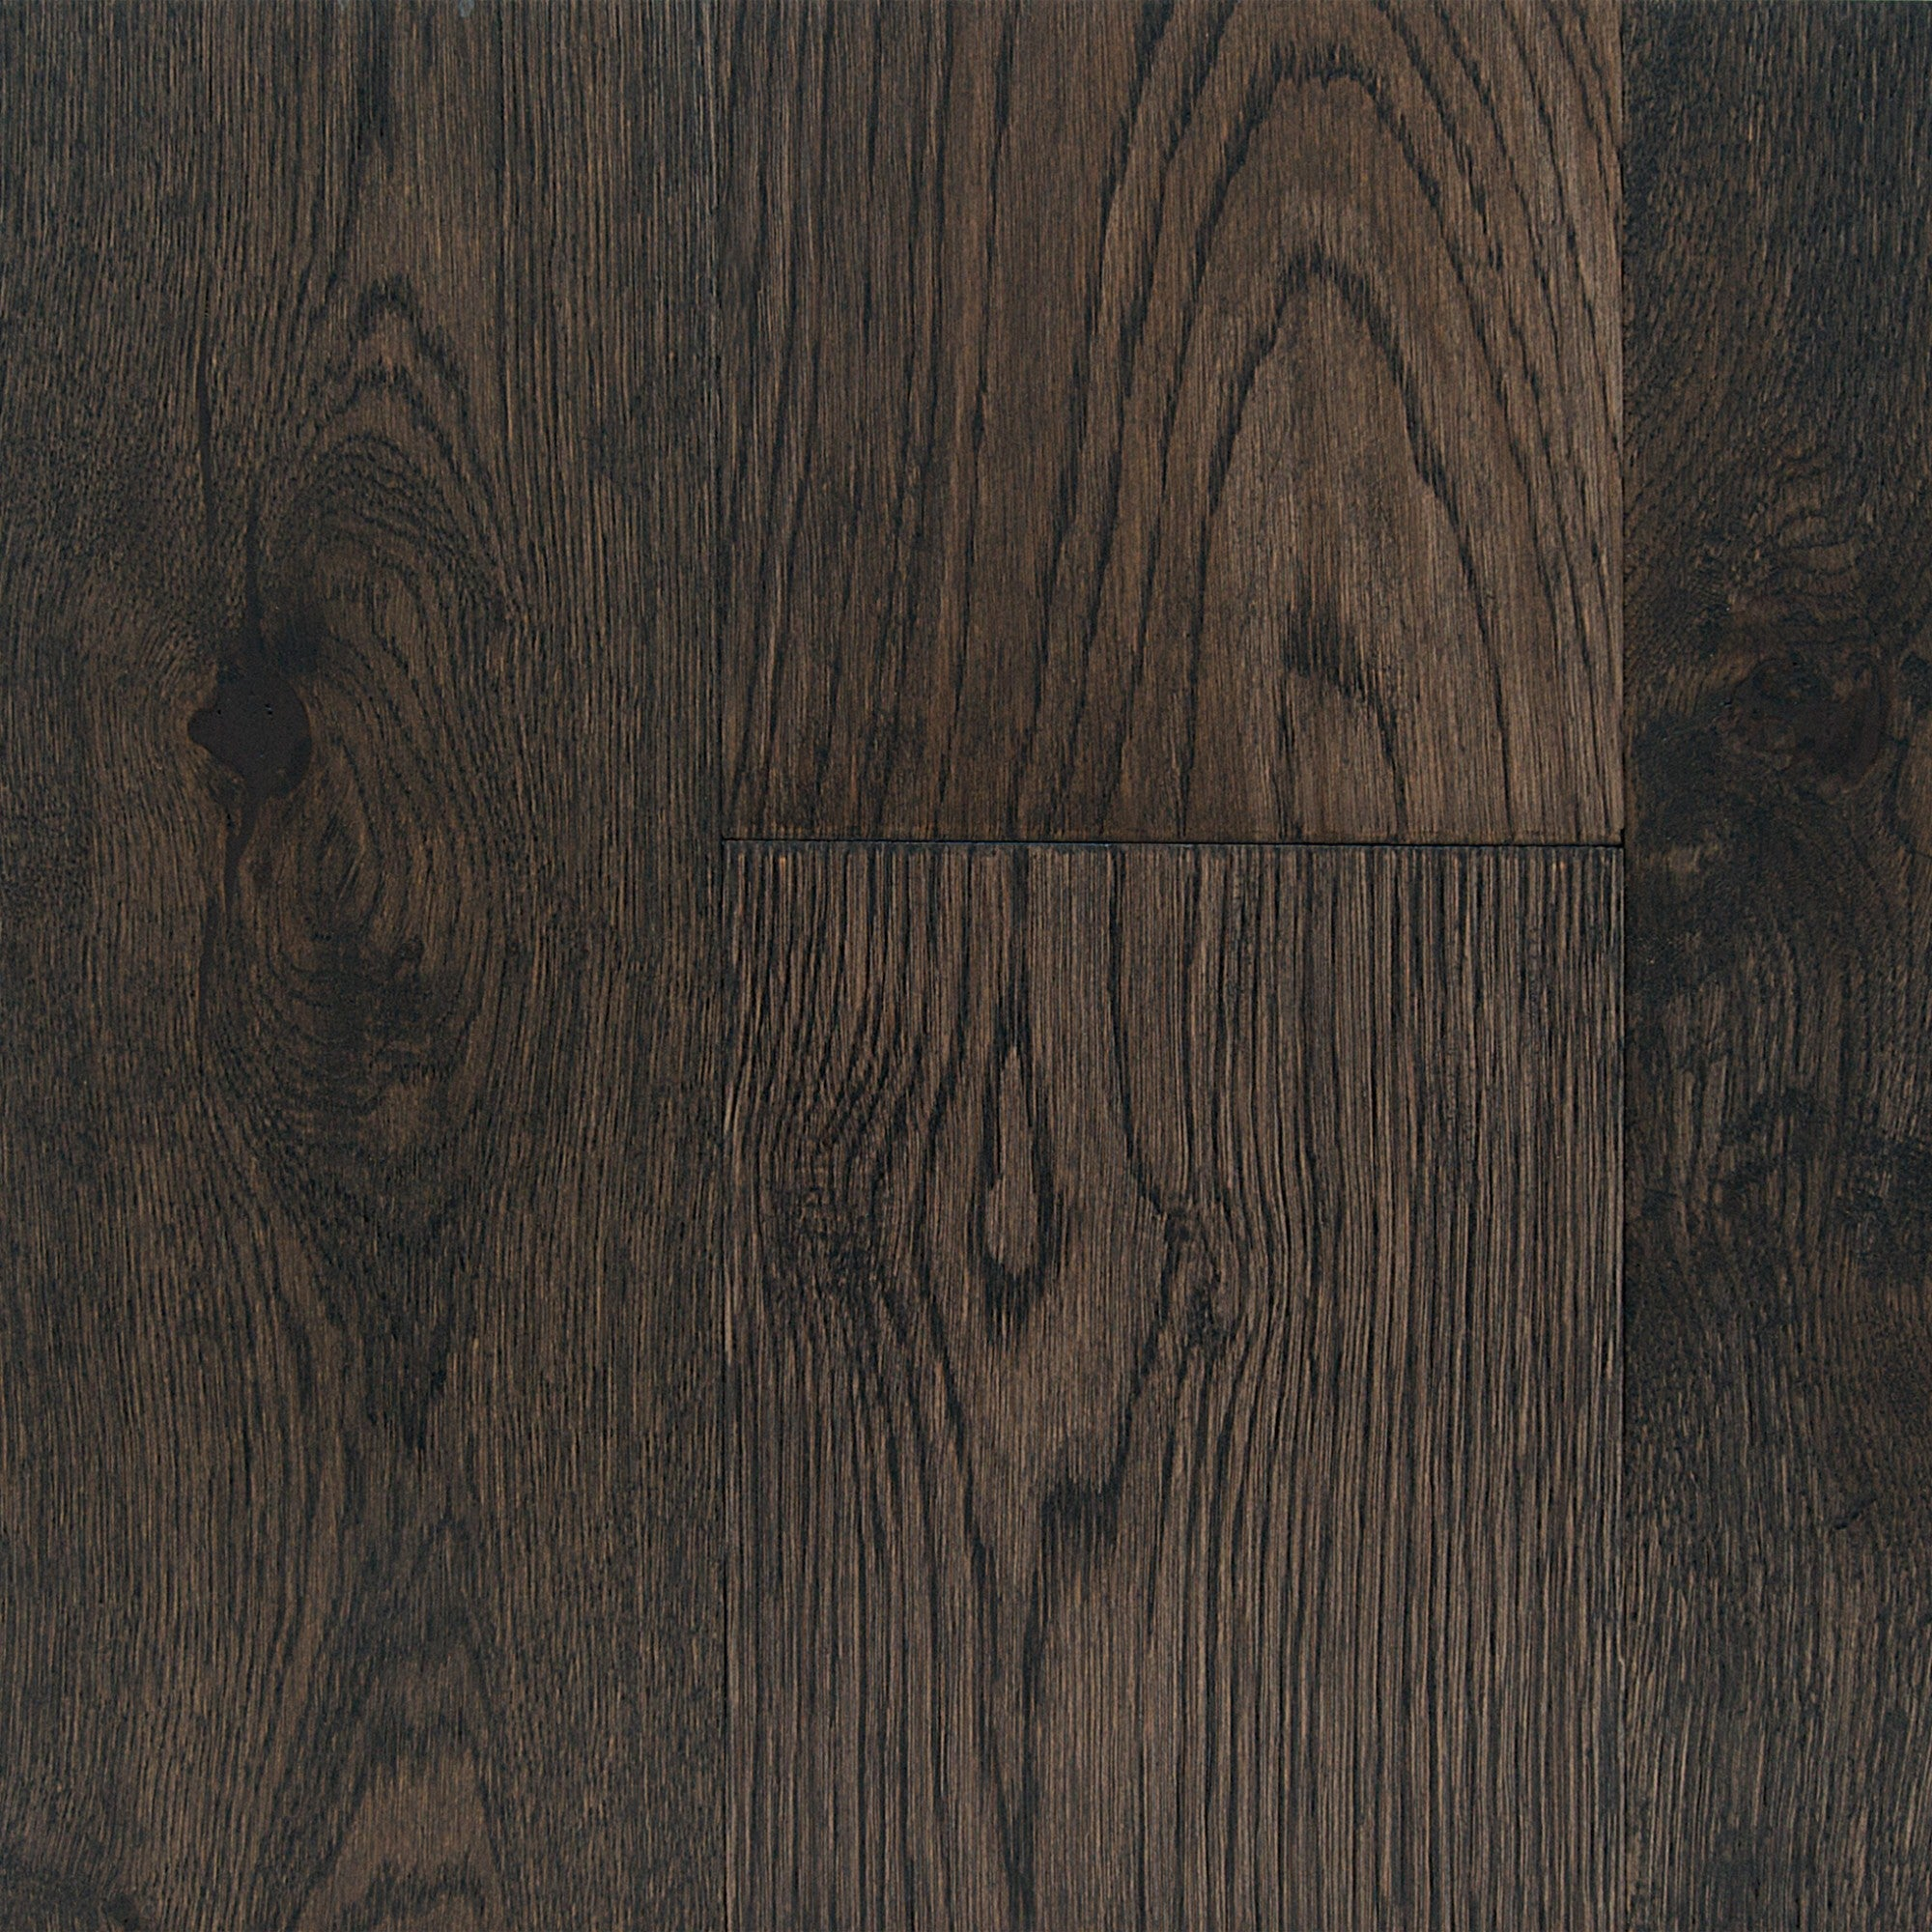 Handscraped - White Oak Gotham